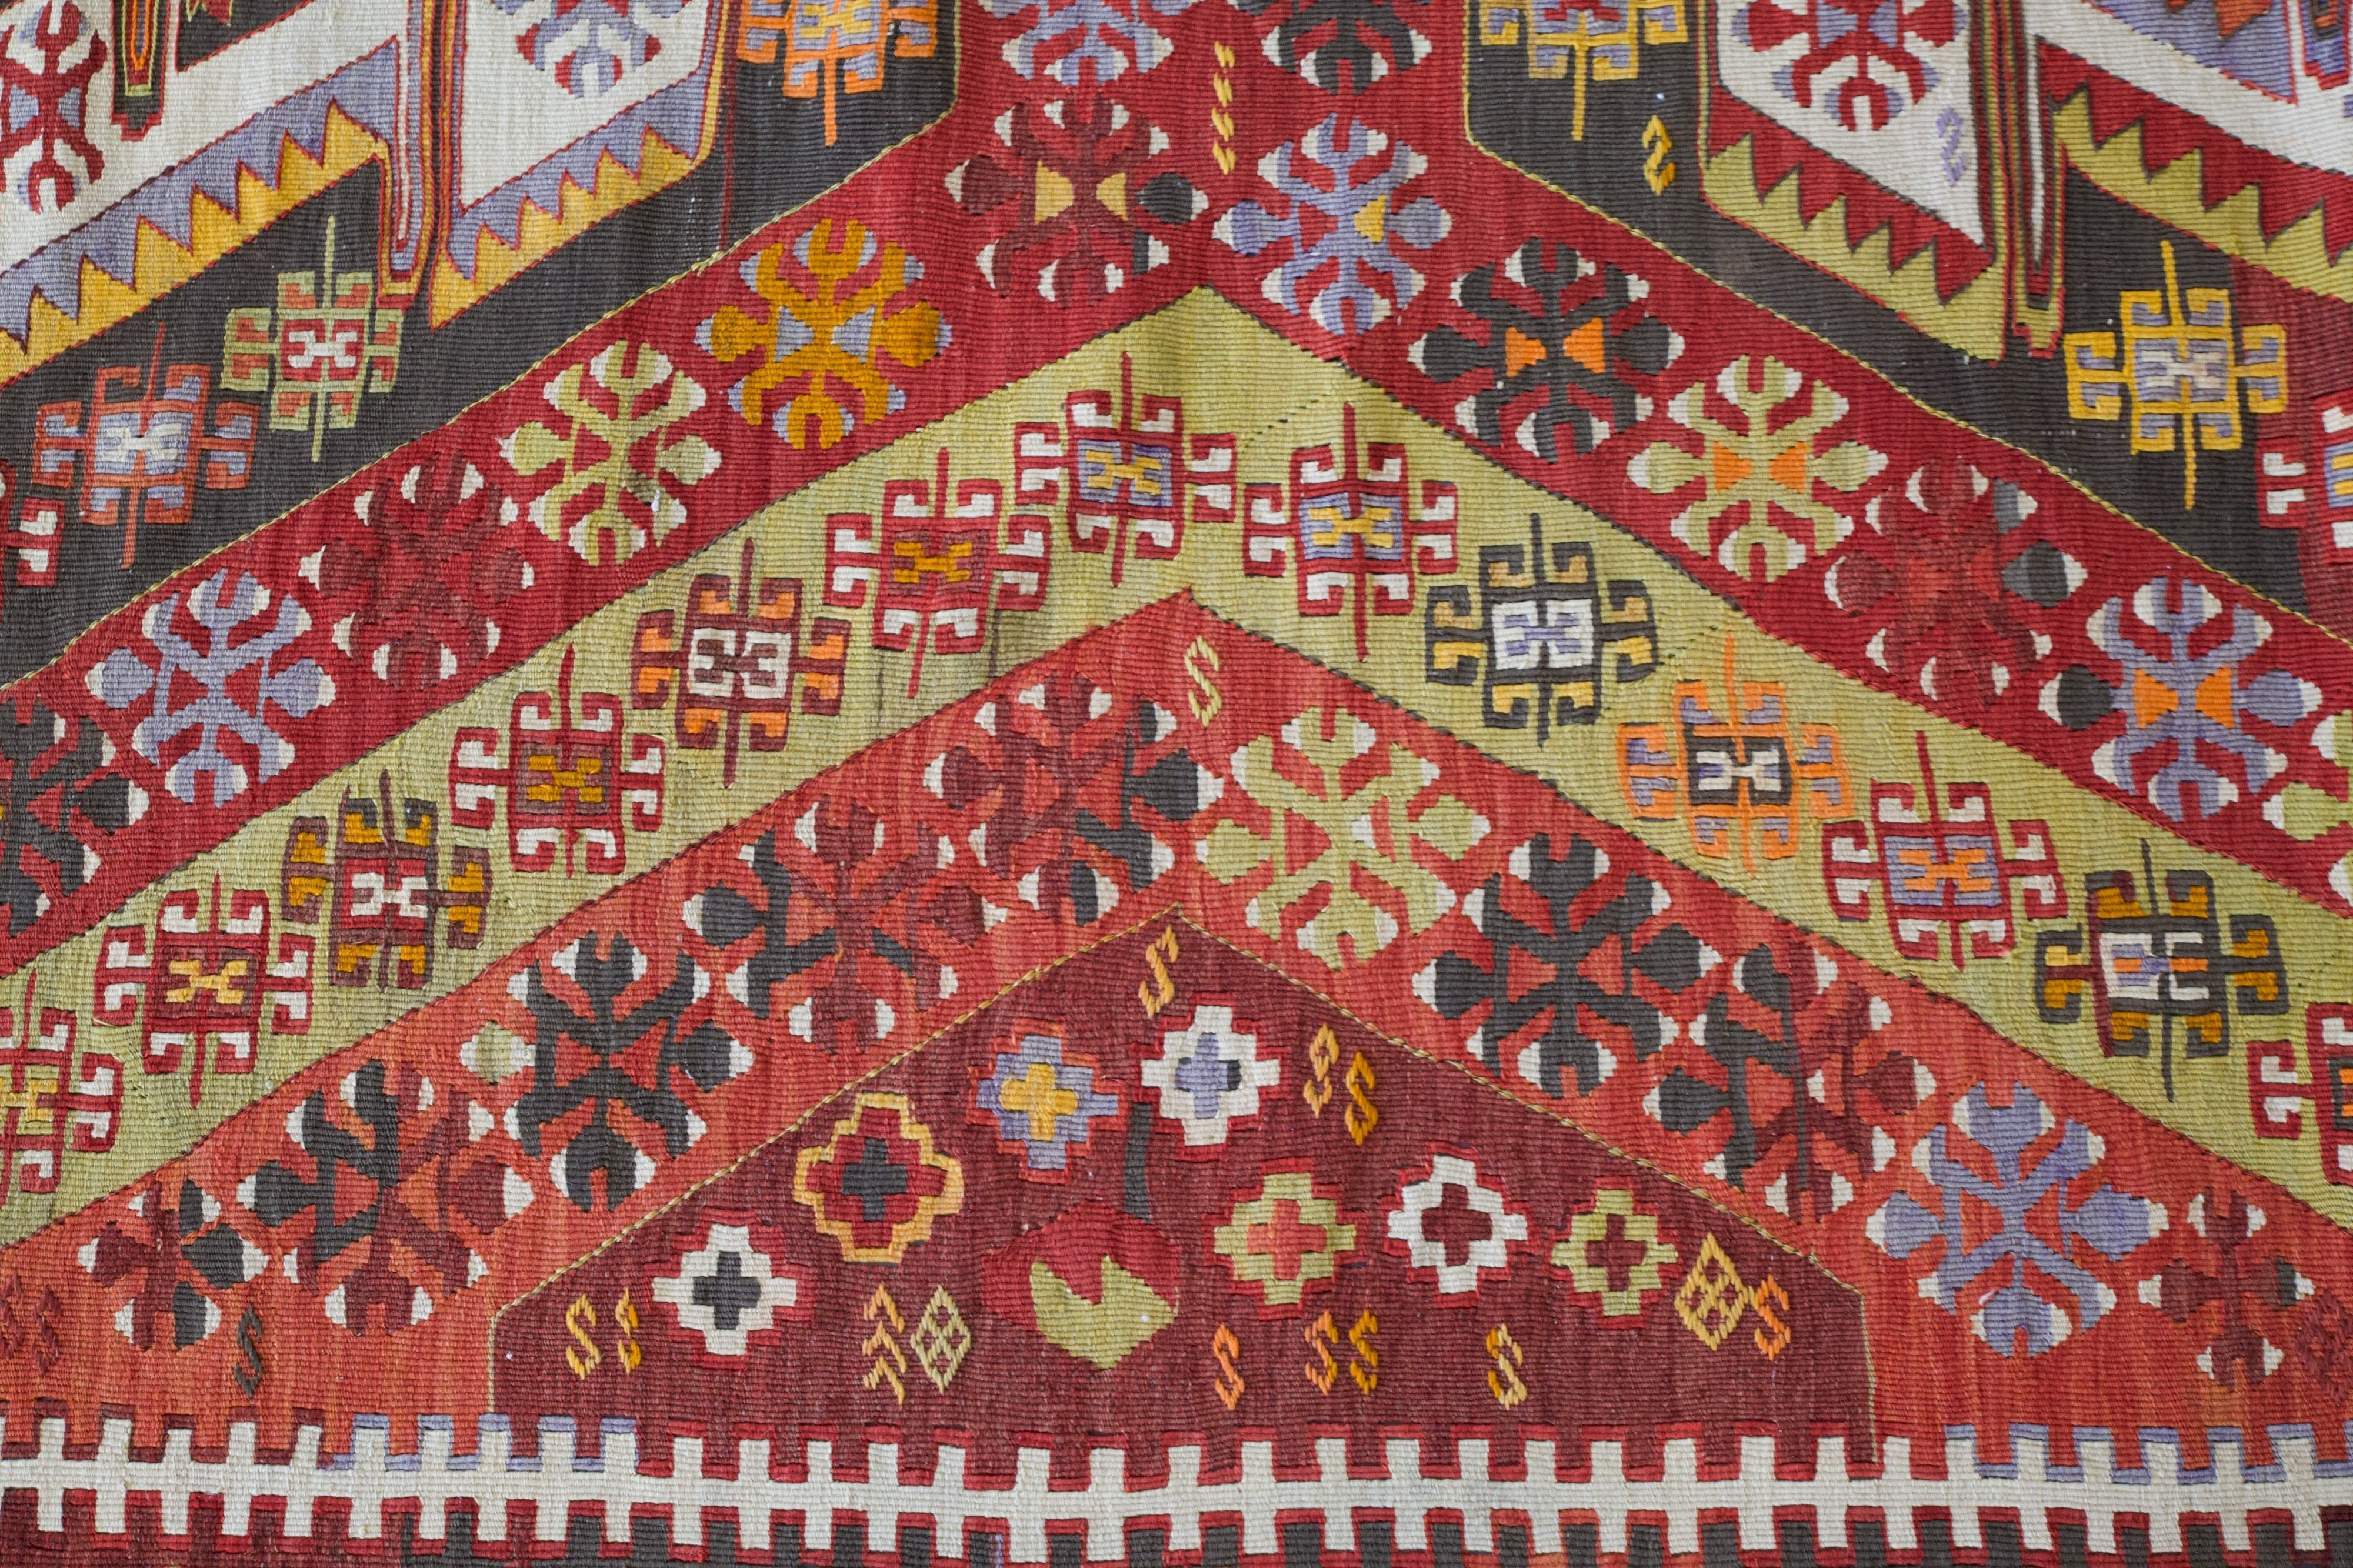 Turkish rug, vintage rug, flat weave, kilim rug, large area rug, square rug, Wild Shaman, Portland, Oregon, rug store, rug shop, local shop,  bright colors, area rug, red rug, bold color